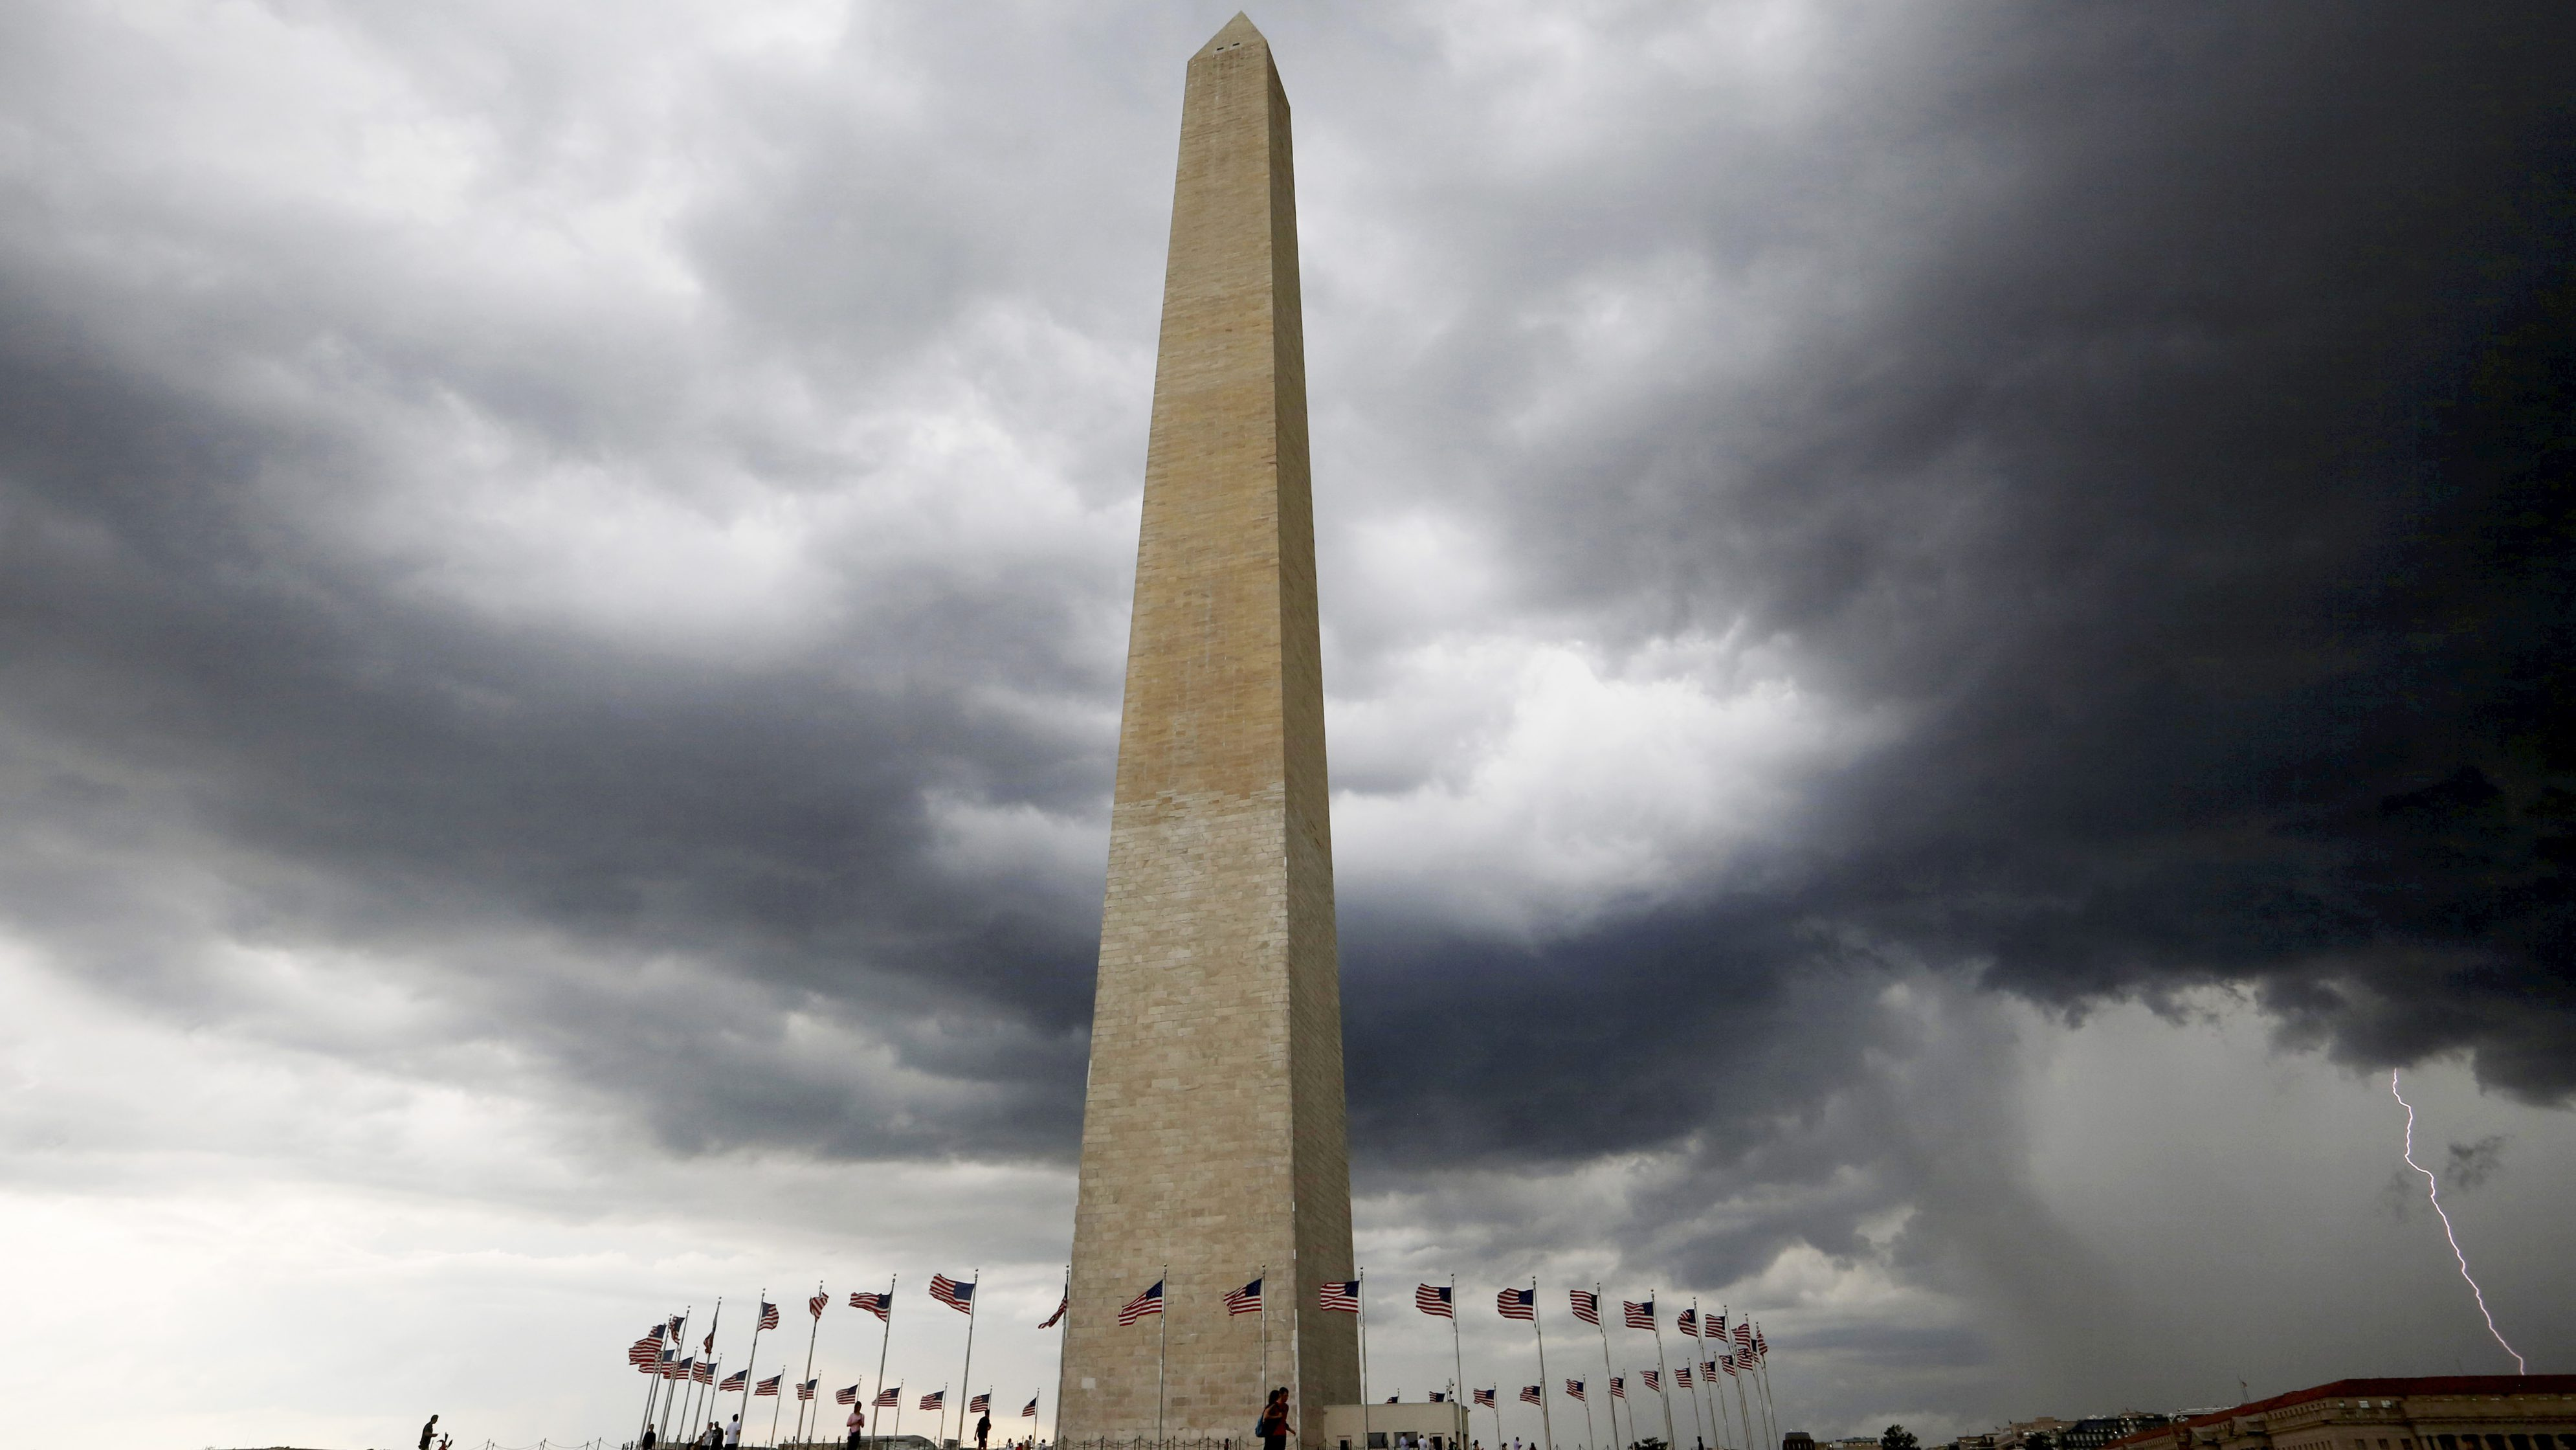 Storm clouds hover above the Washington monument in Washington D.C., U.S., August 15, 2016. Picture taken August 15, 2016. REUTERS/Mike Hutchings/File Photo - TM3EC9Q0WUH01